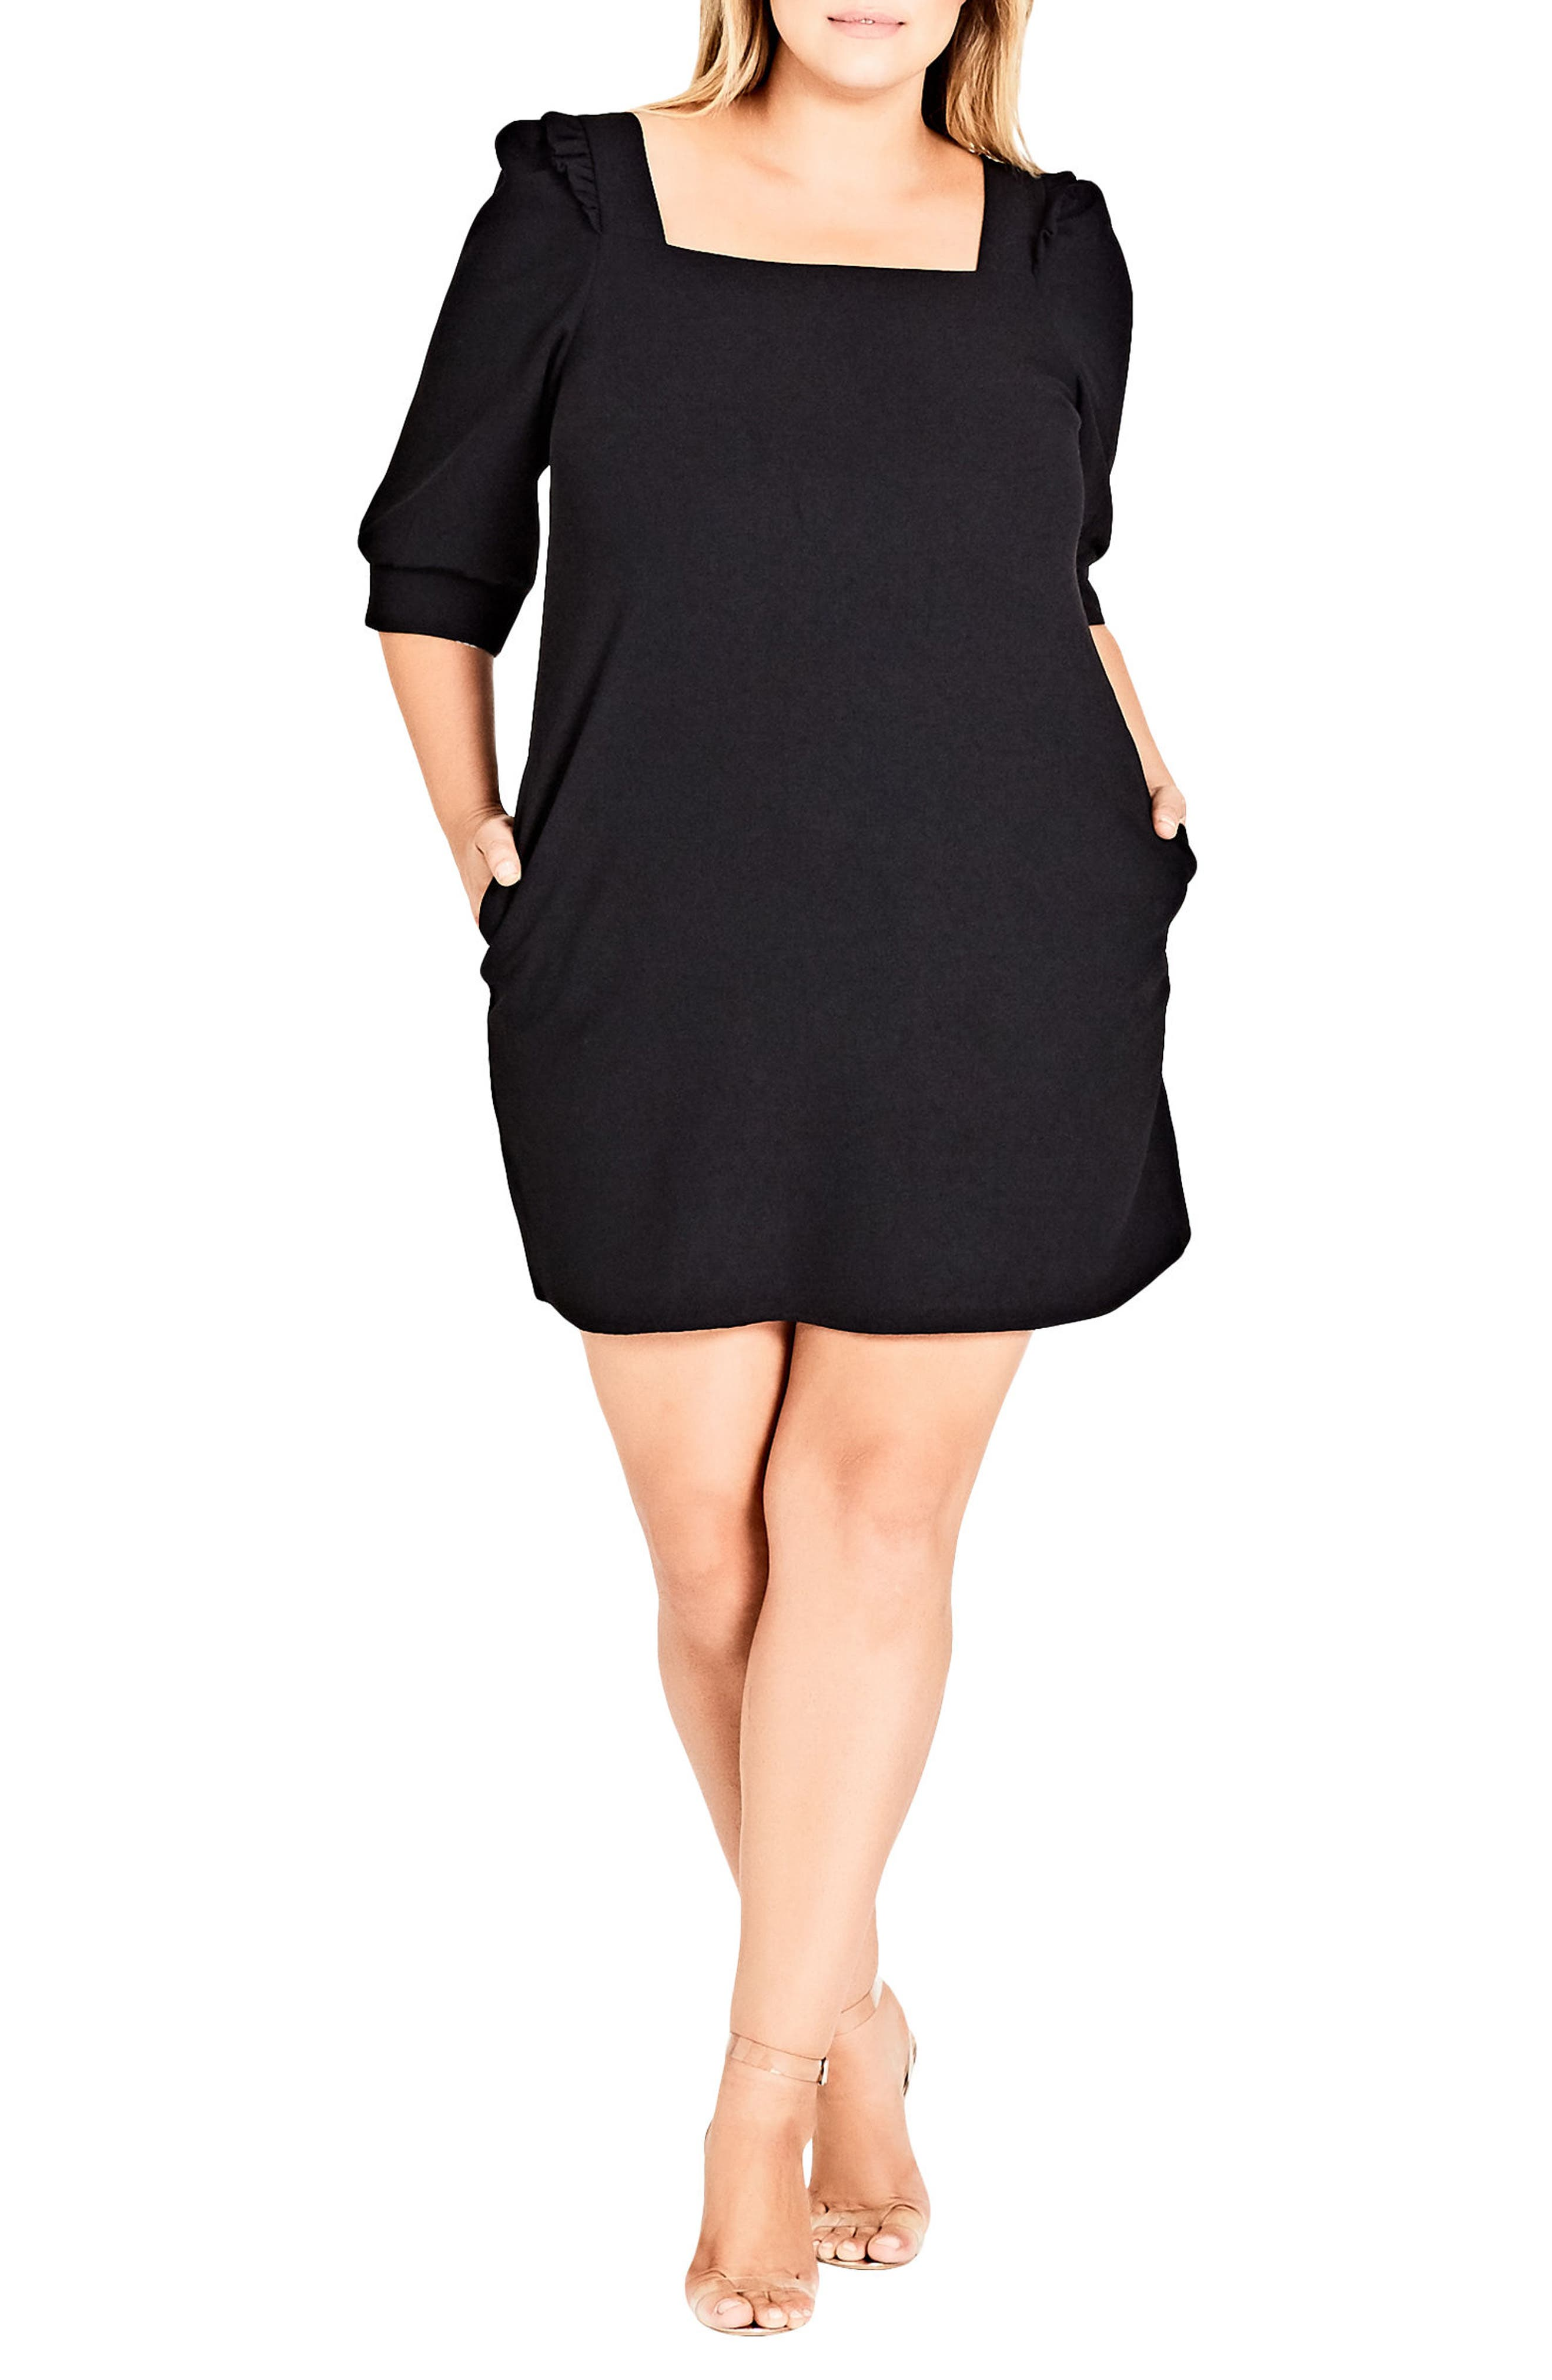 Madewell north square shirt dress plus size